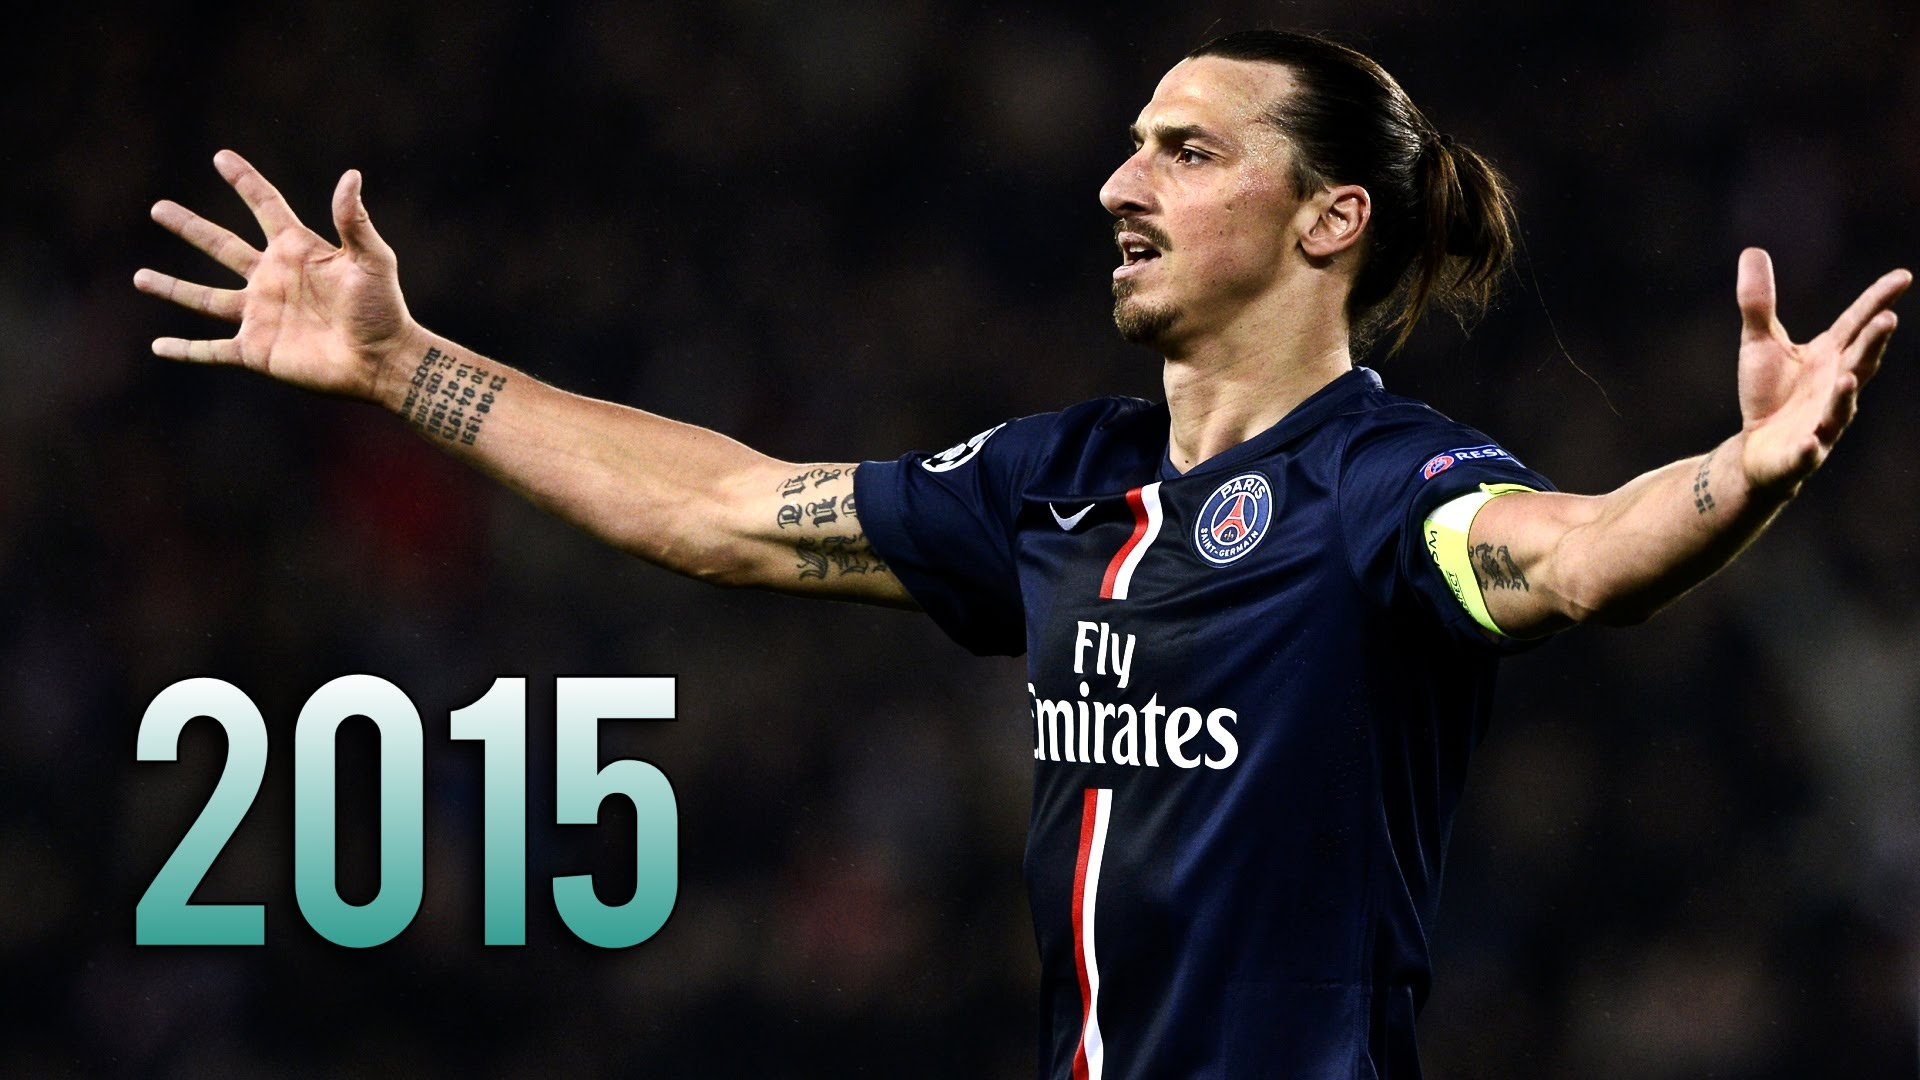 Zlatan Ibrahimovic Wallpapers Pictures Images 1920x1080